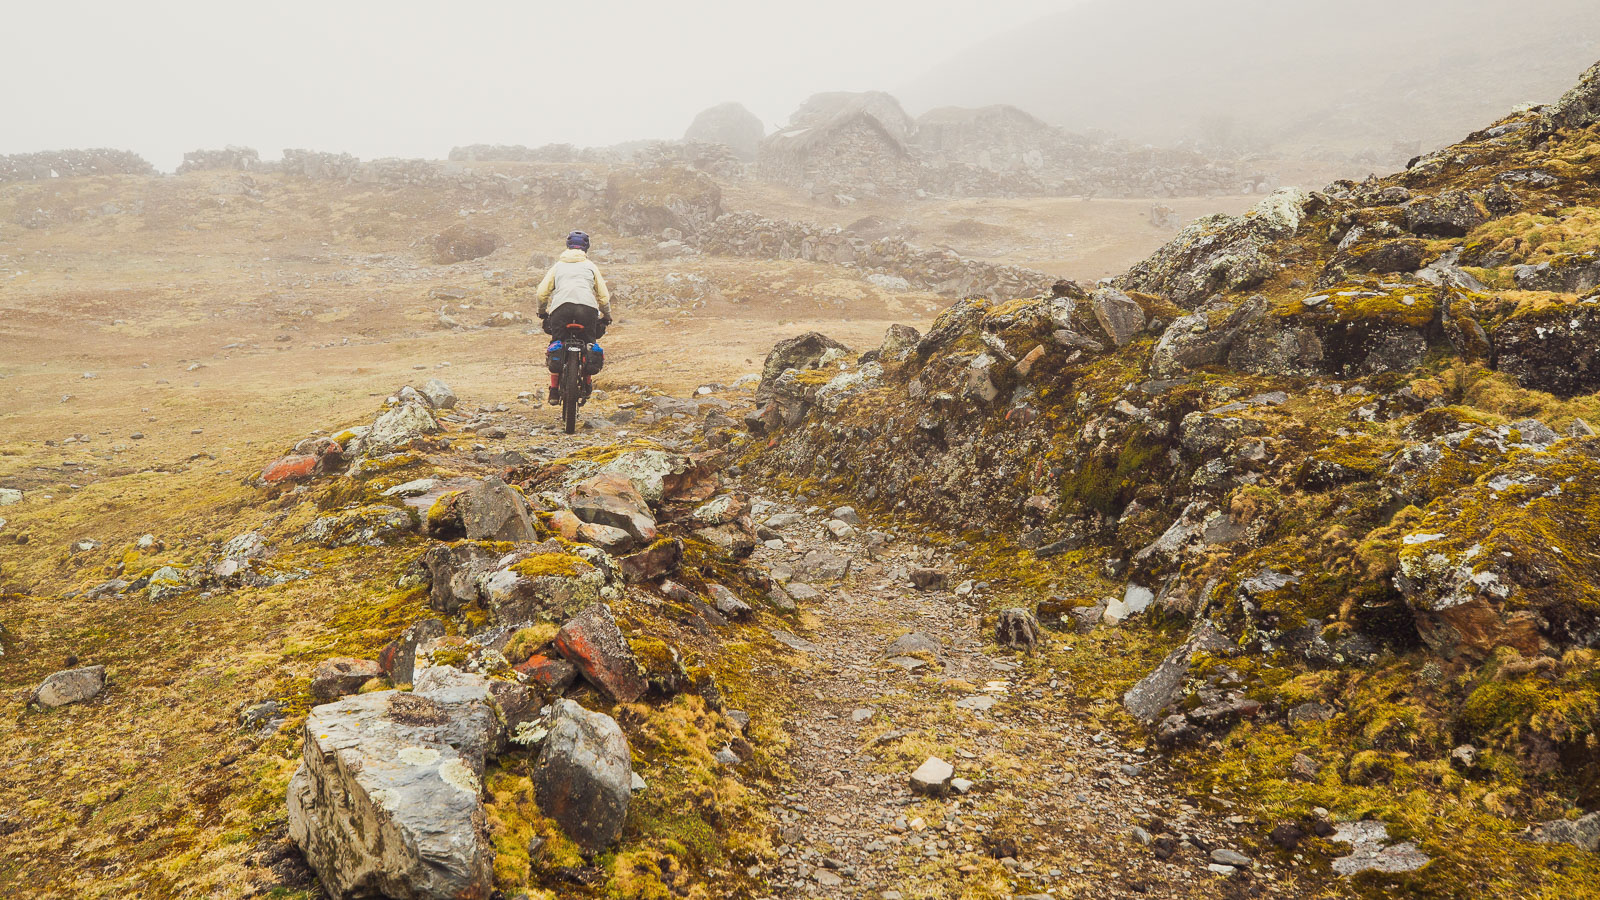 Bolivia: Bikepacking the Cordillera Apolobamba